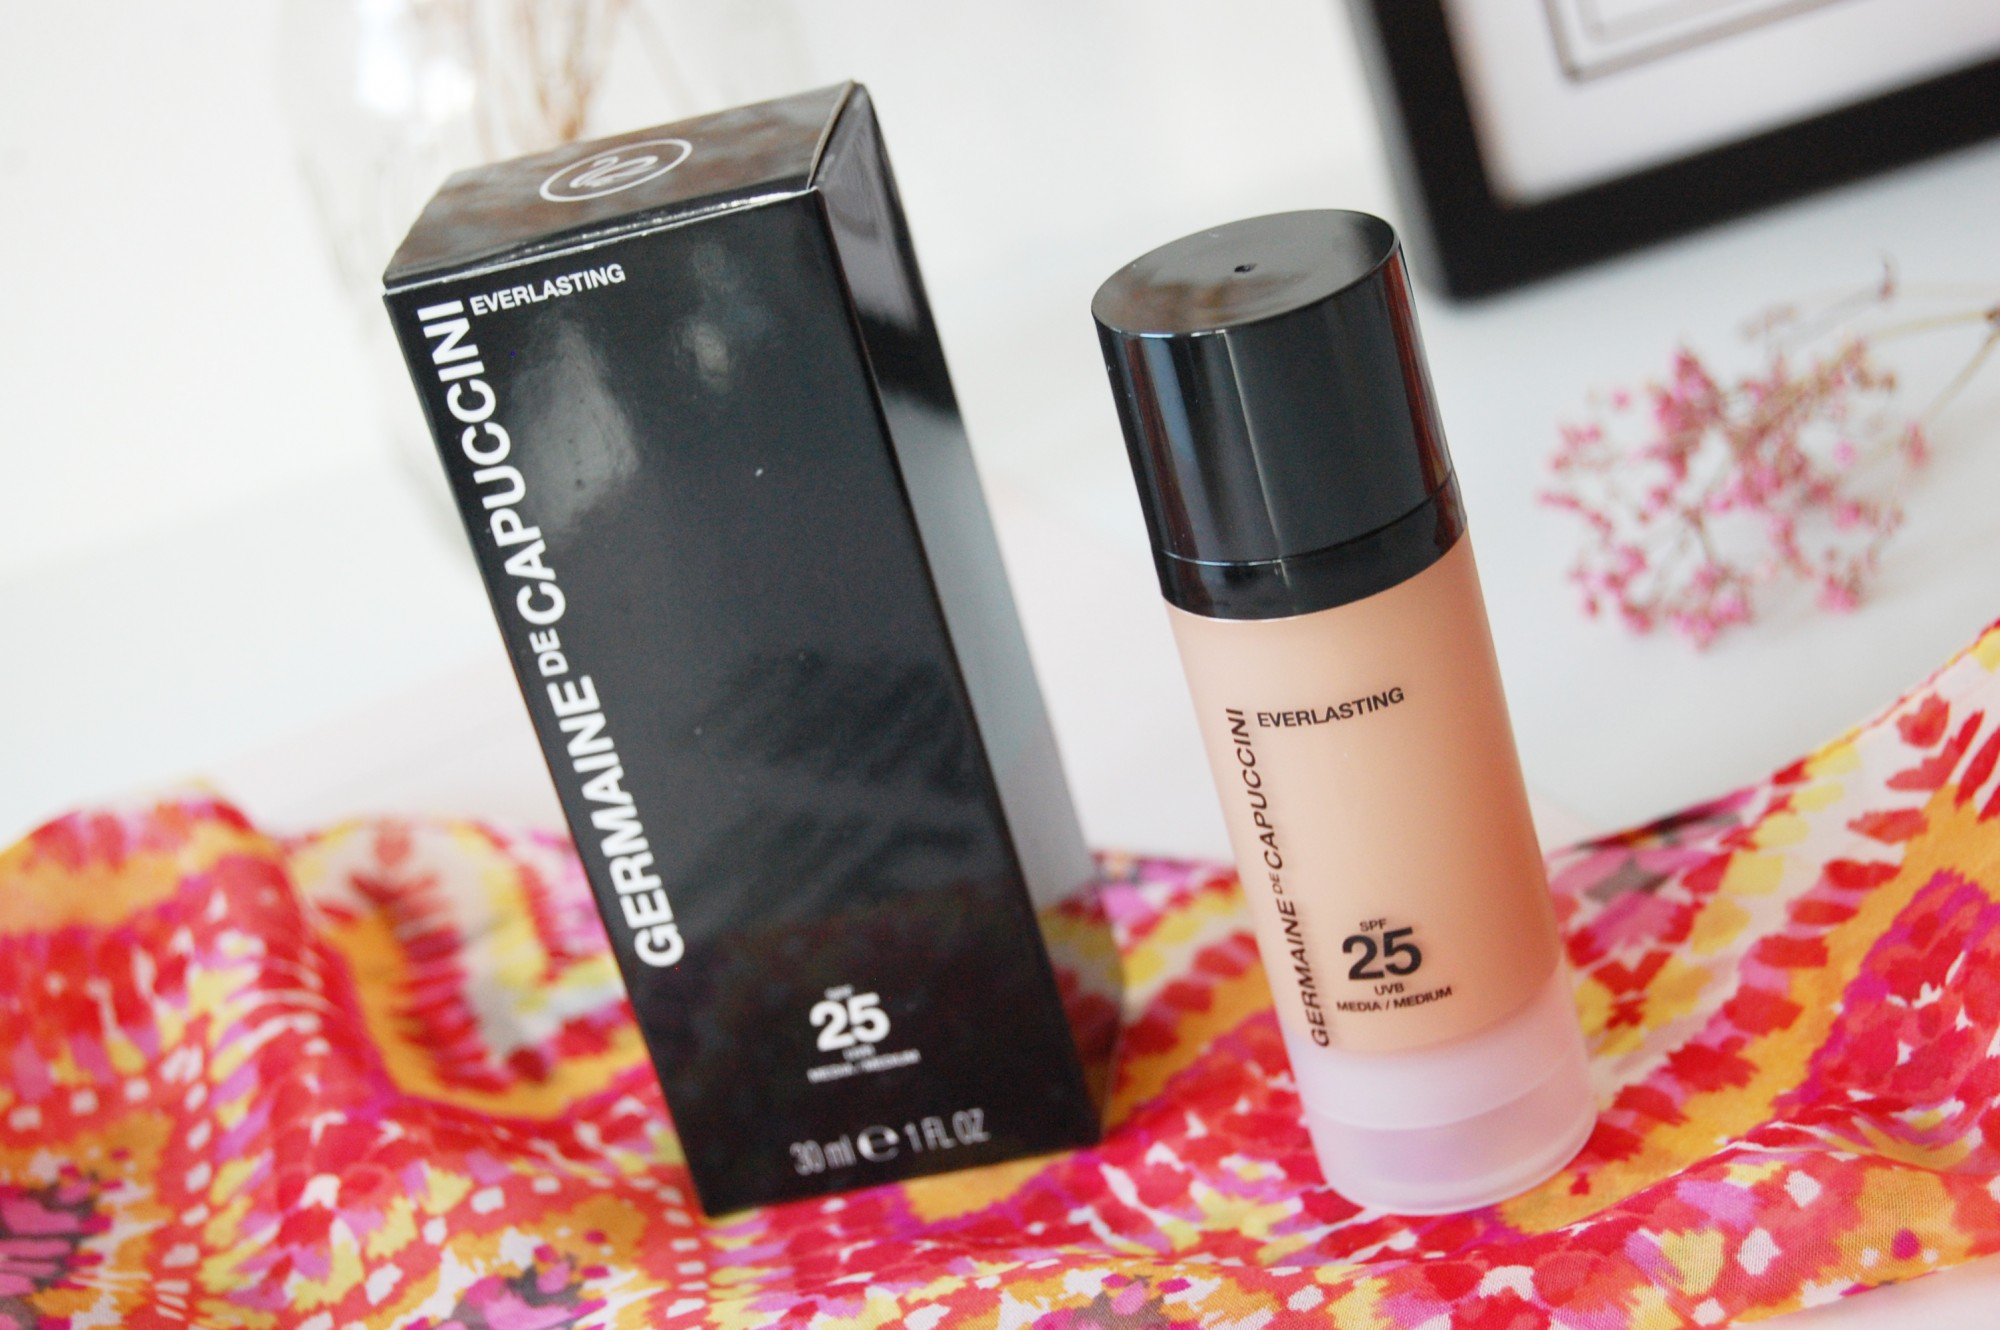 Germaine de Capuccini Dress Your Skin make-up